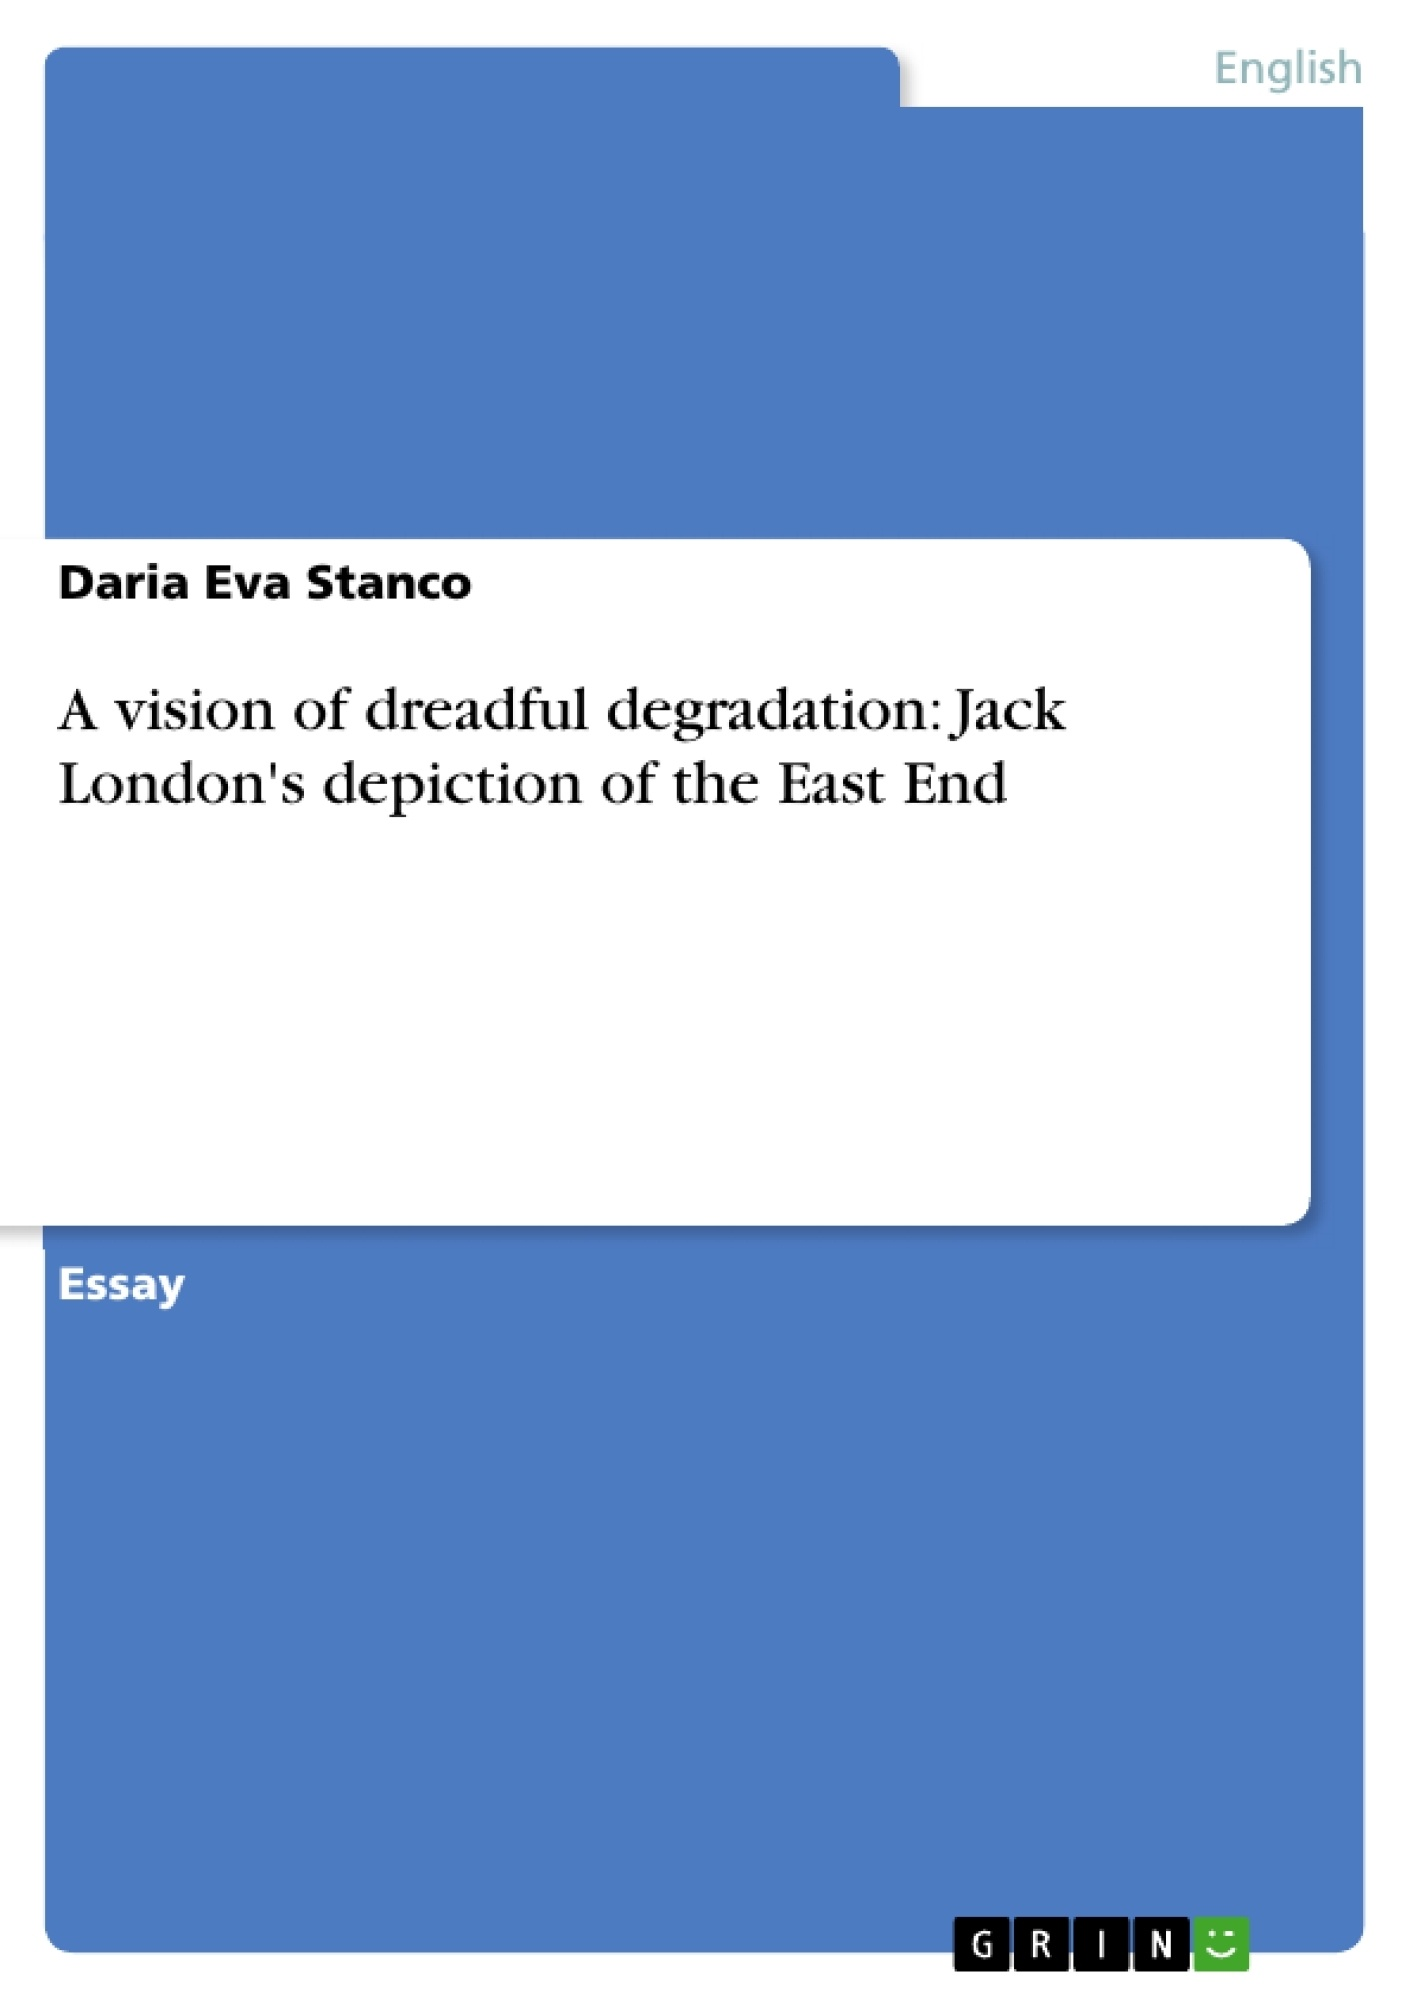 Title: A vision of dreadful degradation: Jack London's depiction of the East End